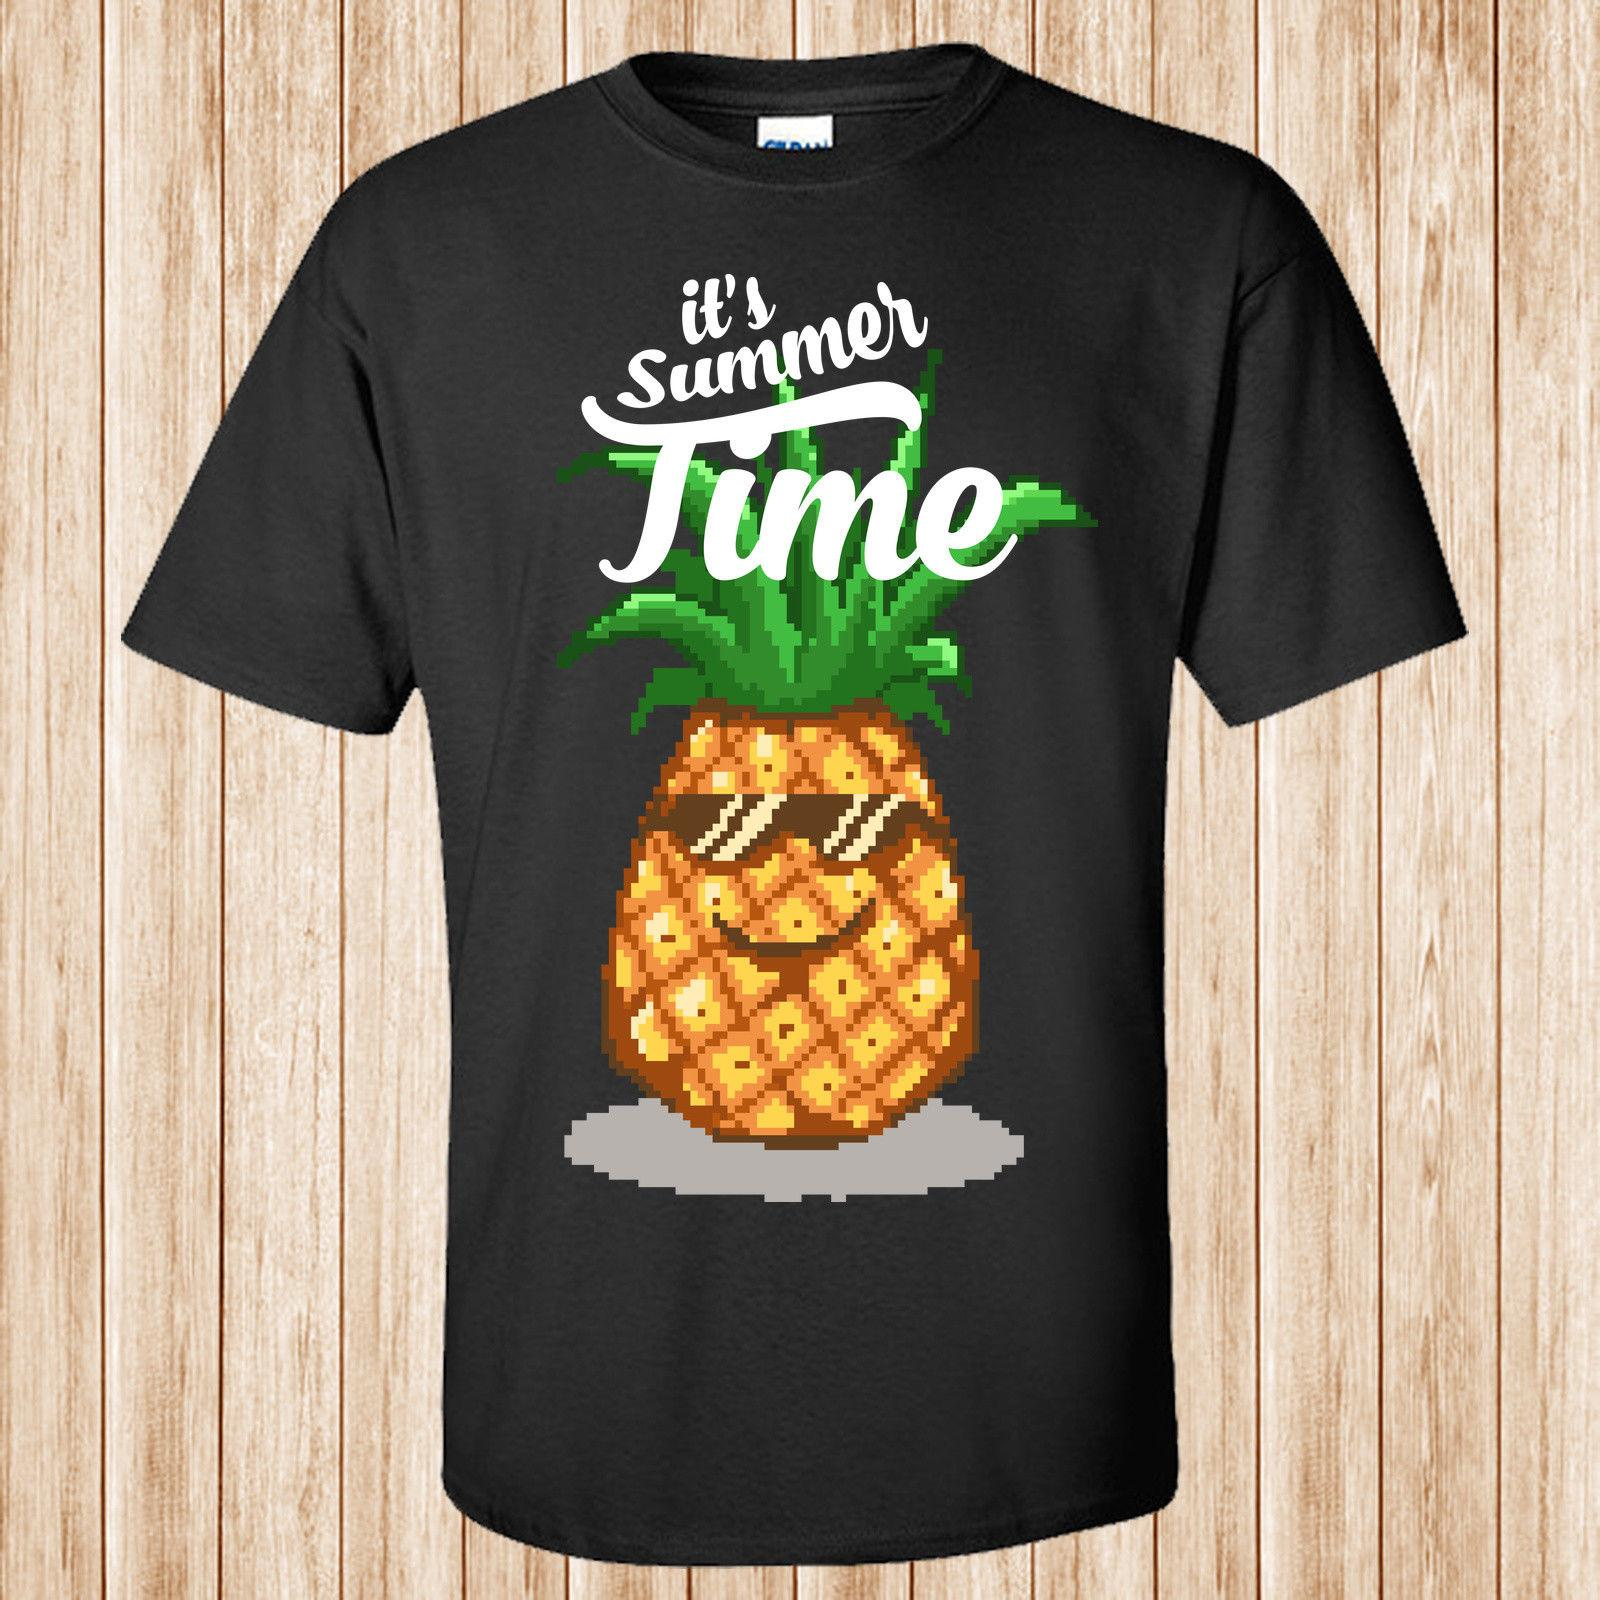 Happy Summer Pineapple Pixel Art T Shirt Retro Style Mans Unique Cotton Short Sleeves O Neck Buy Funky T Shirts Online Ot Shirts From